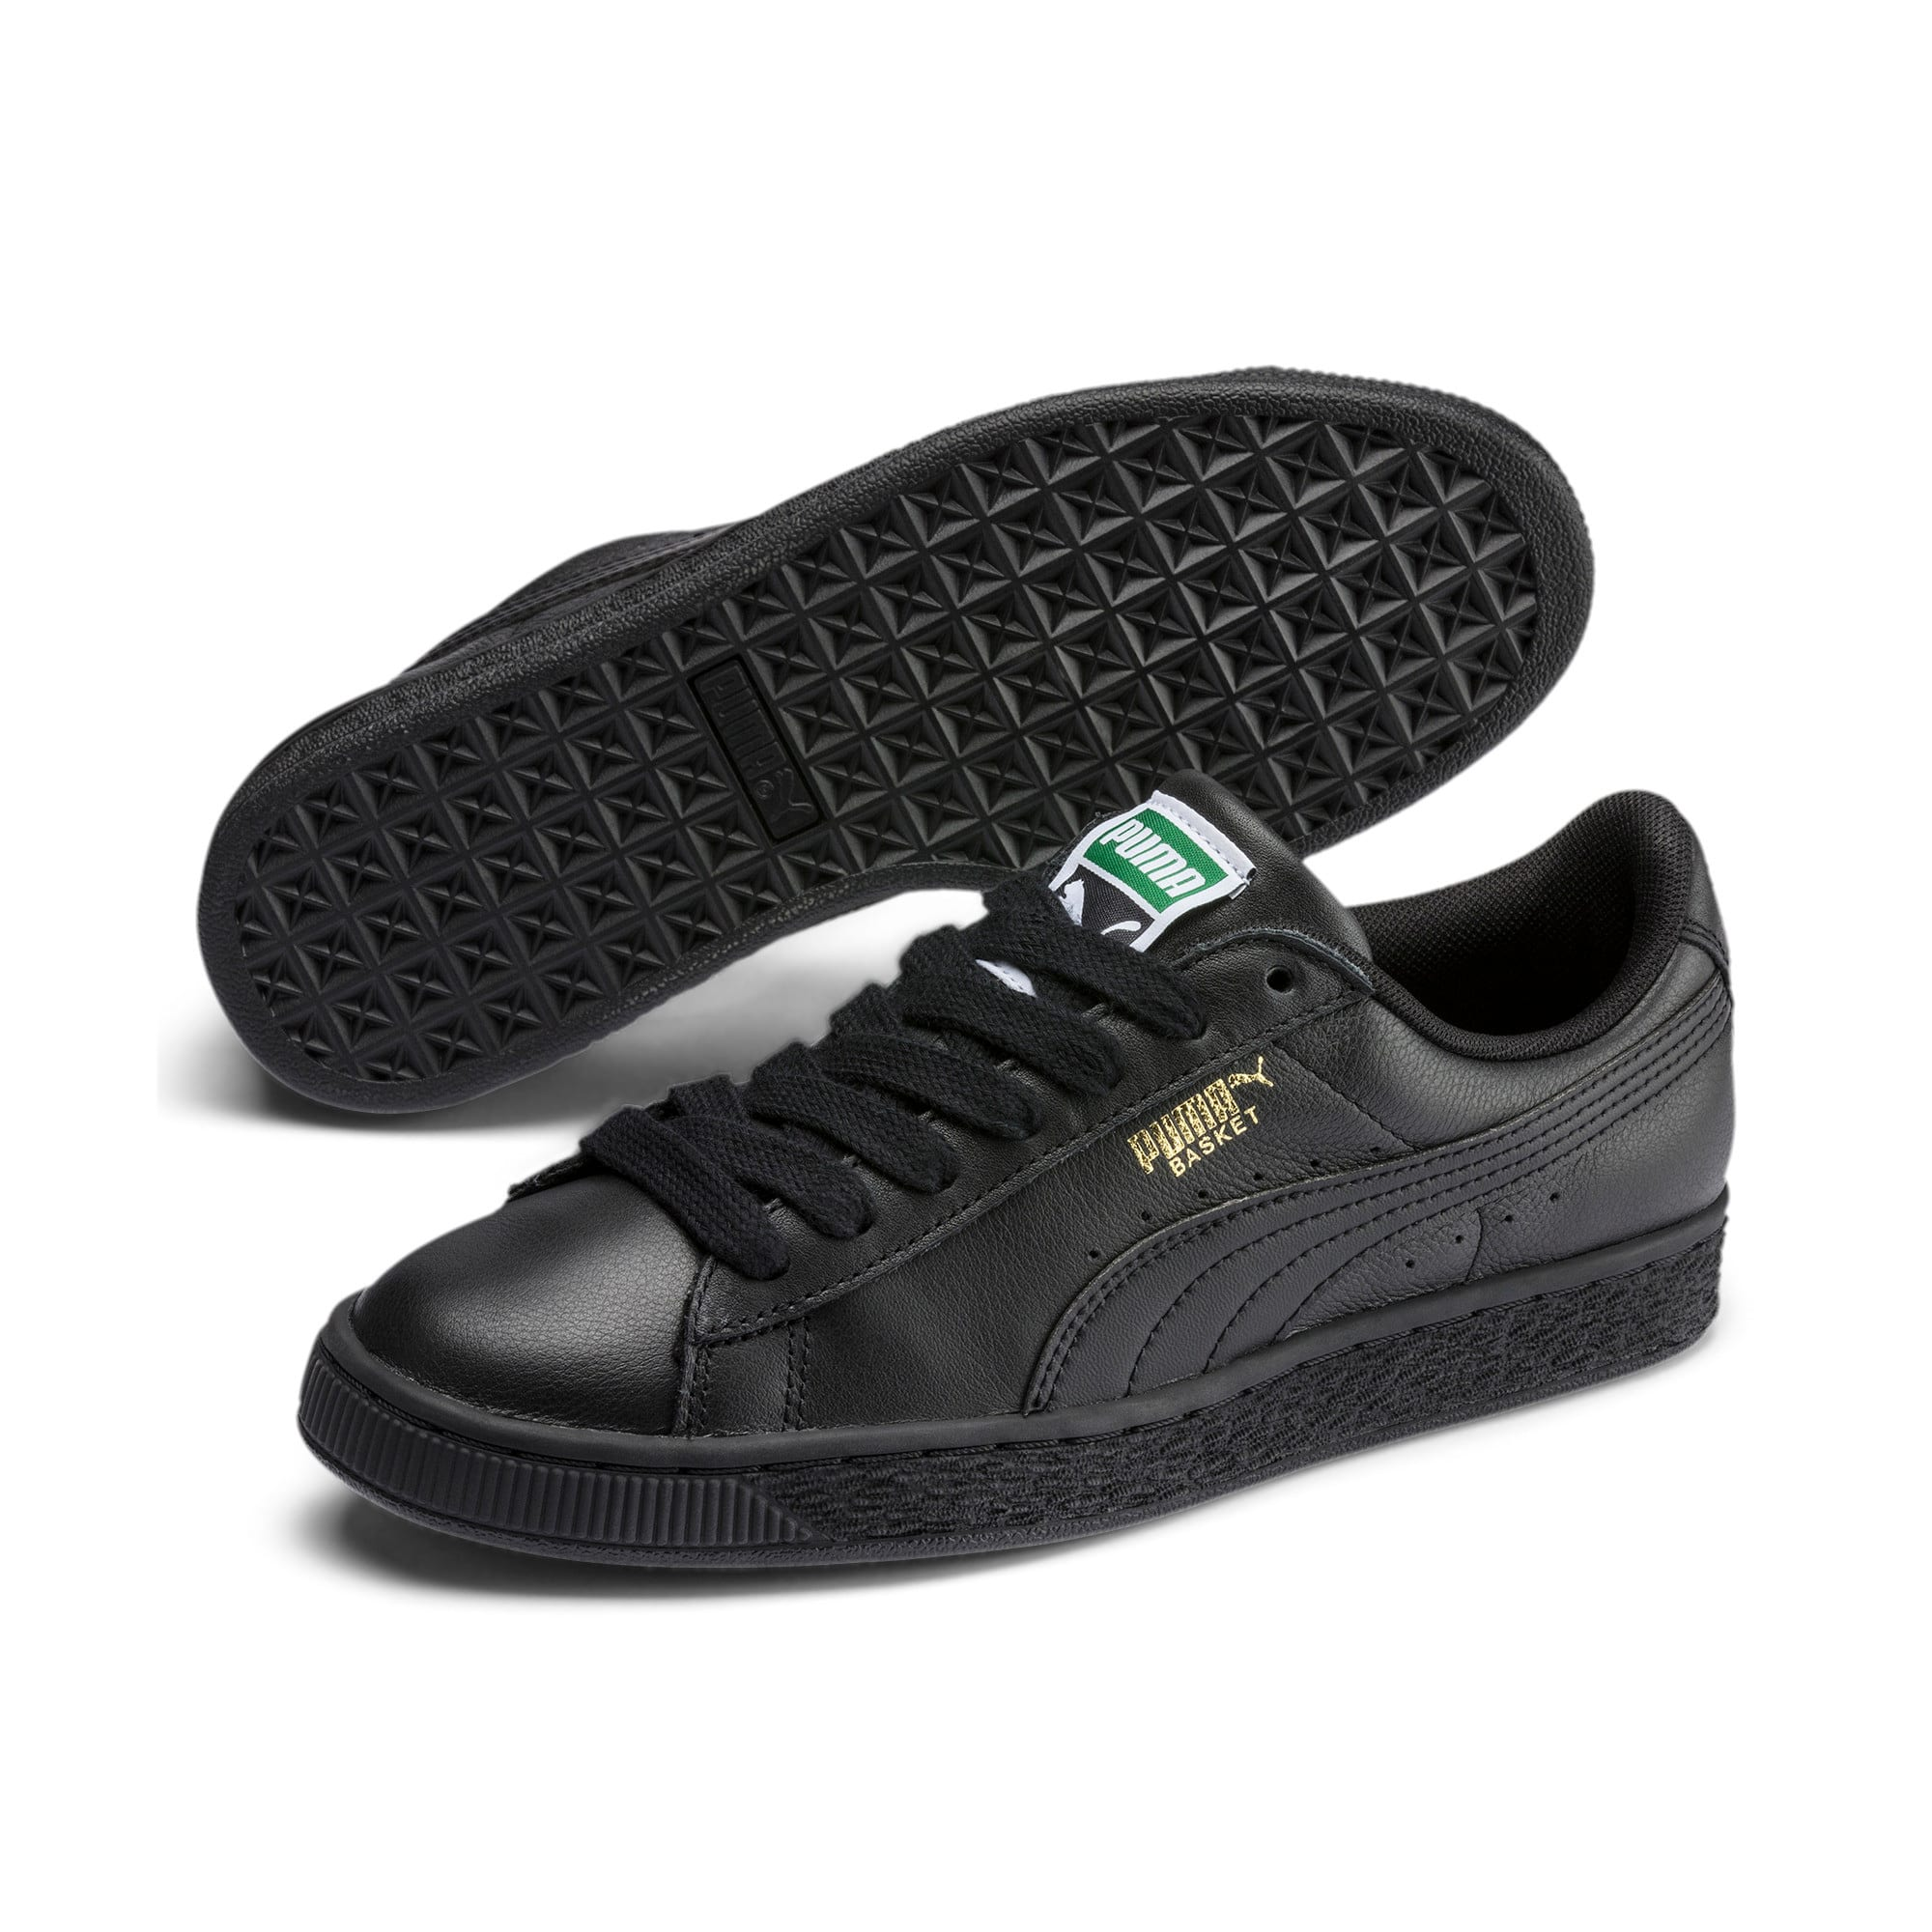 Heritage Basket Classic Sneakers, black-team gold, large